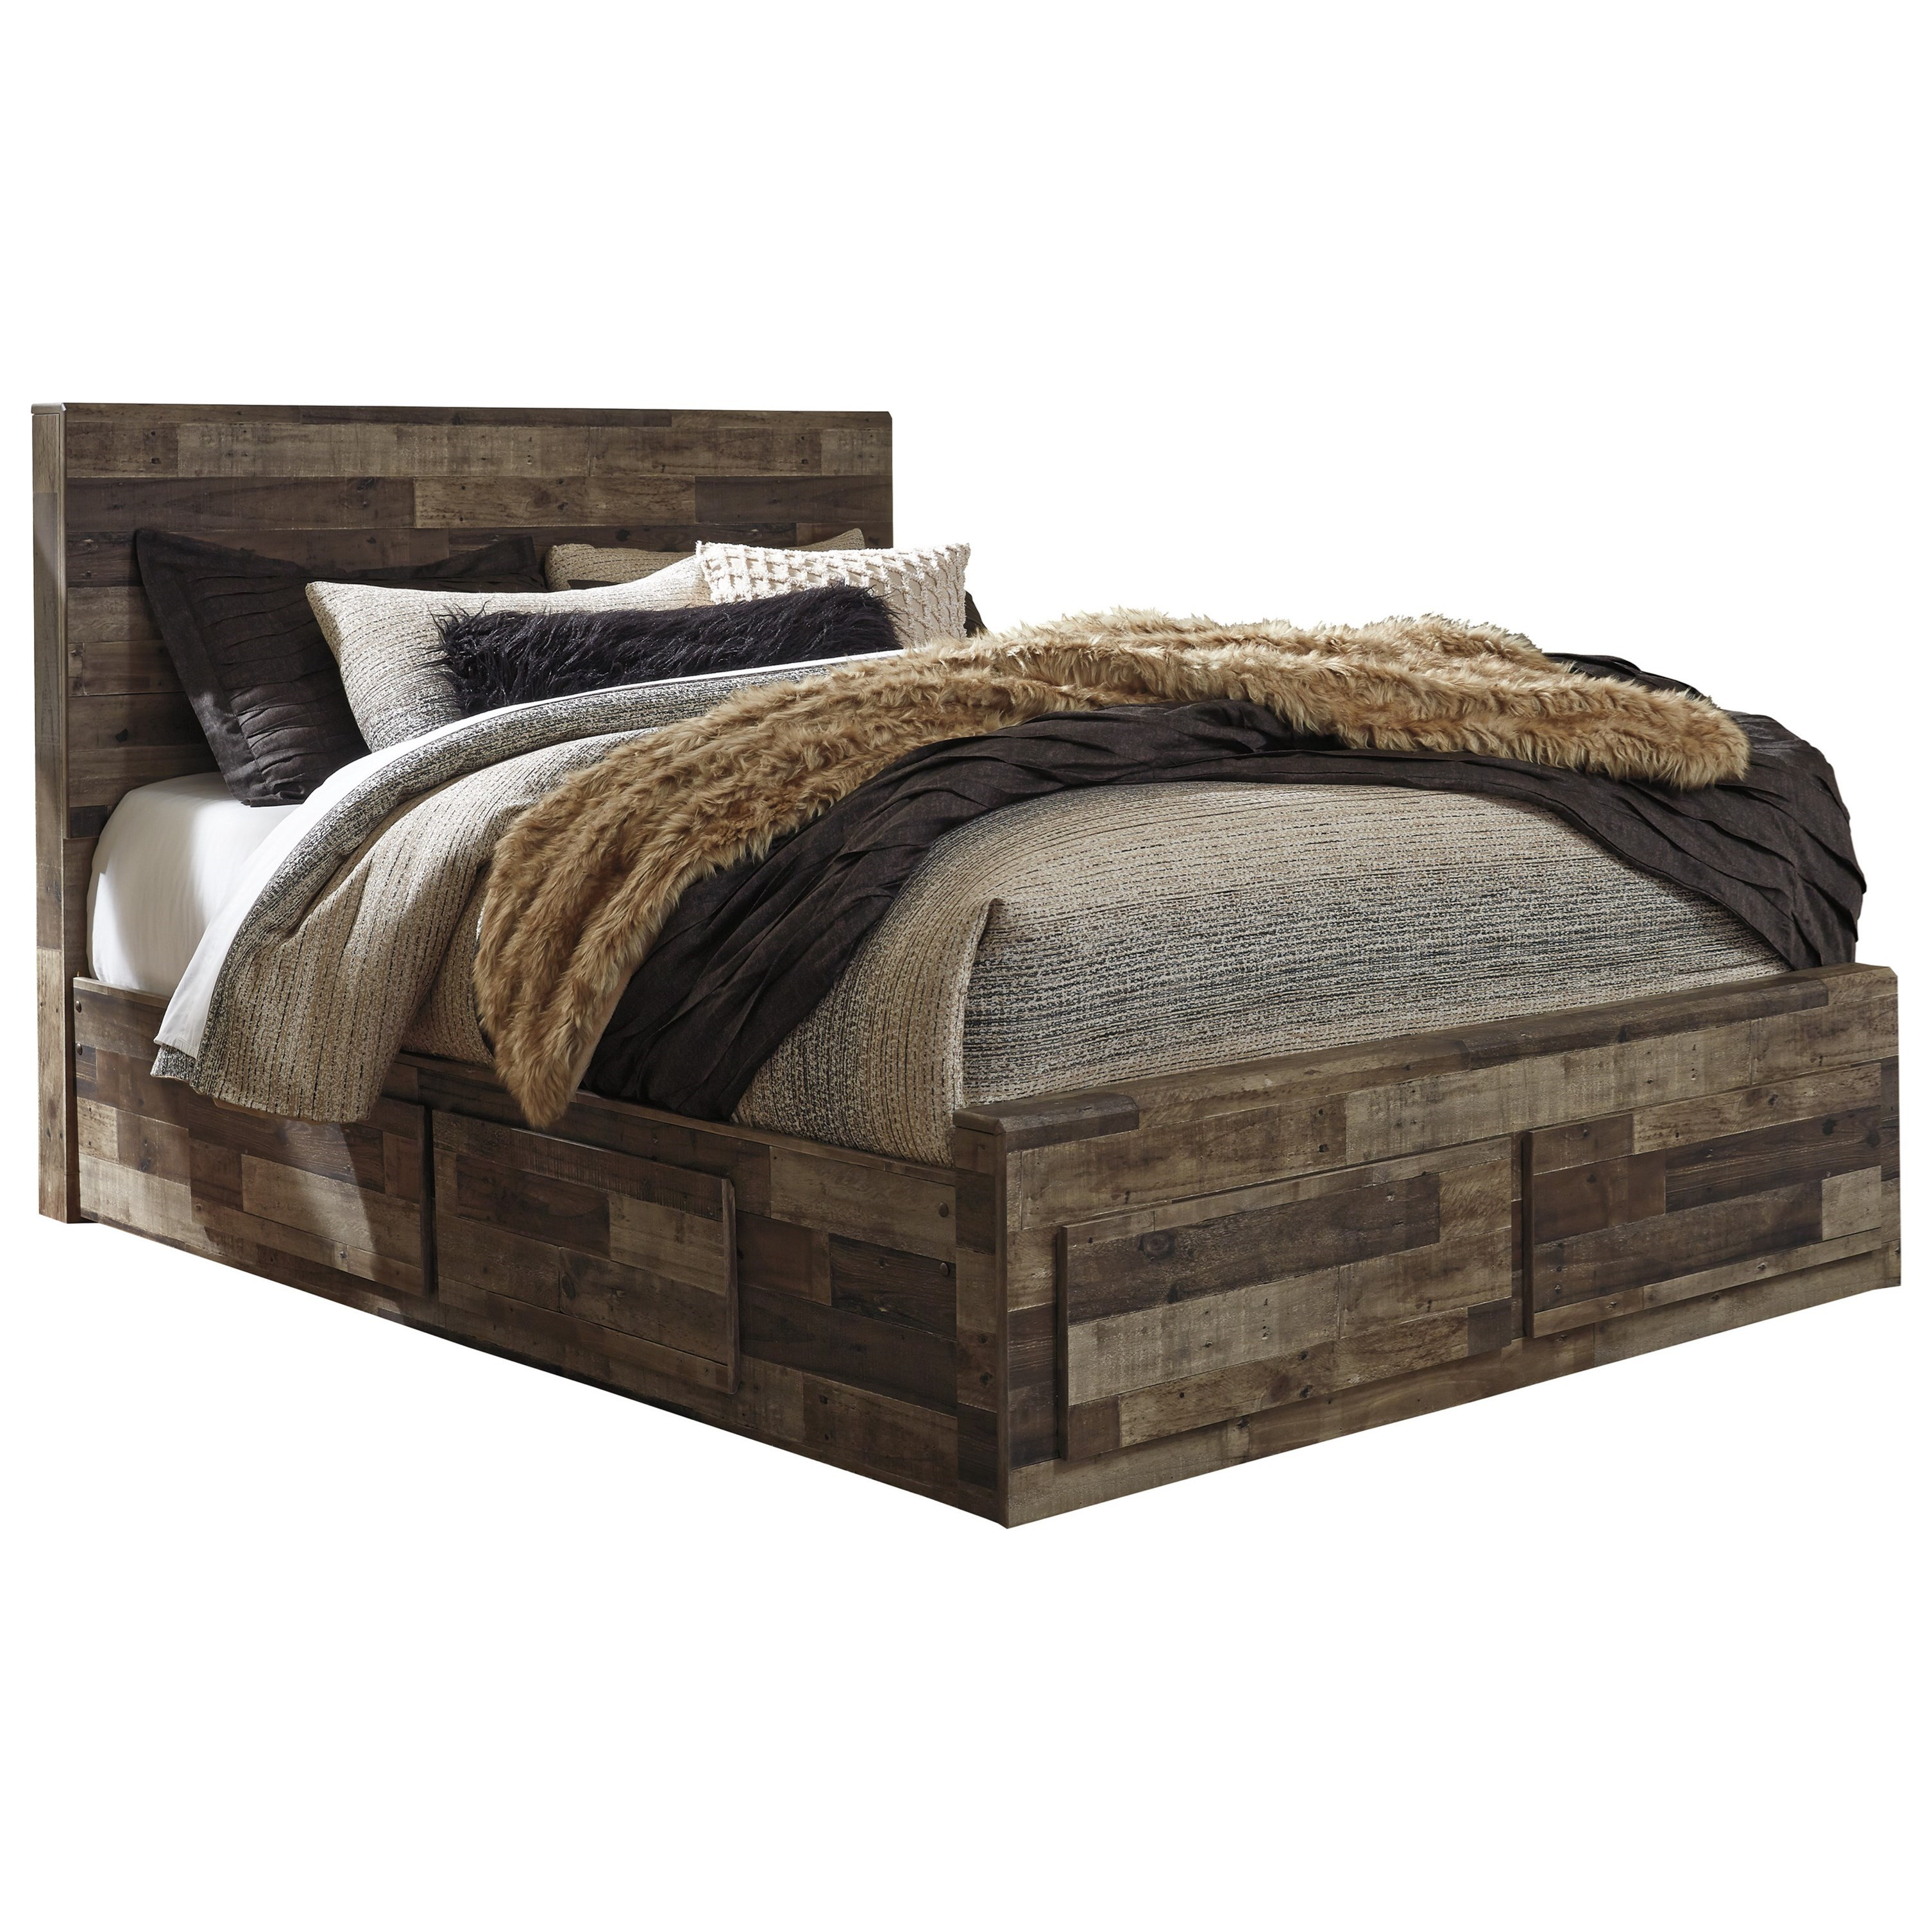 benchcraft derekson rustic modern queen storage bed with 6 drawers del sol furniture. Black Bedroom Furniture Sets. Home Design Ideas